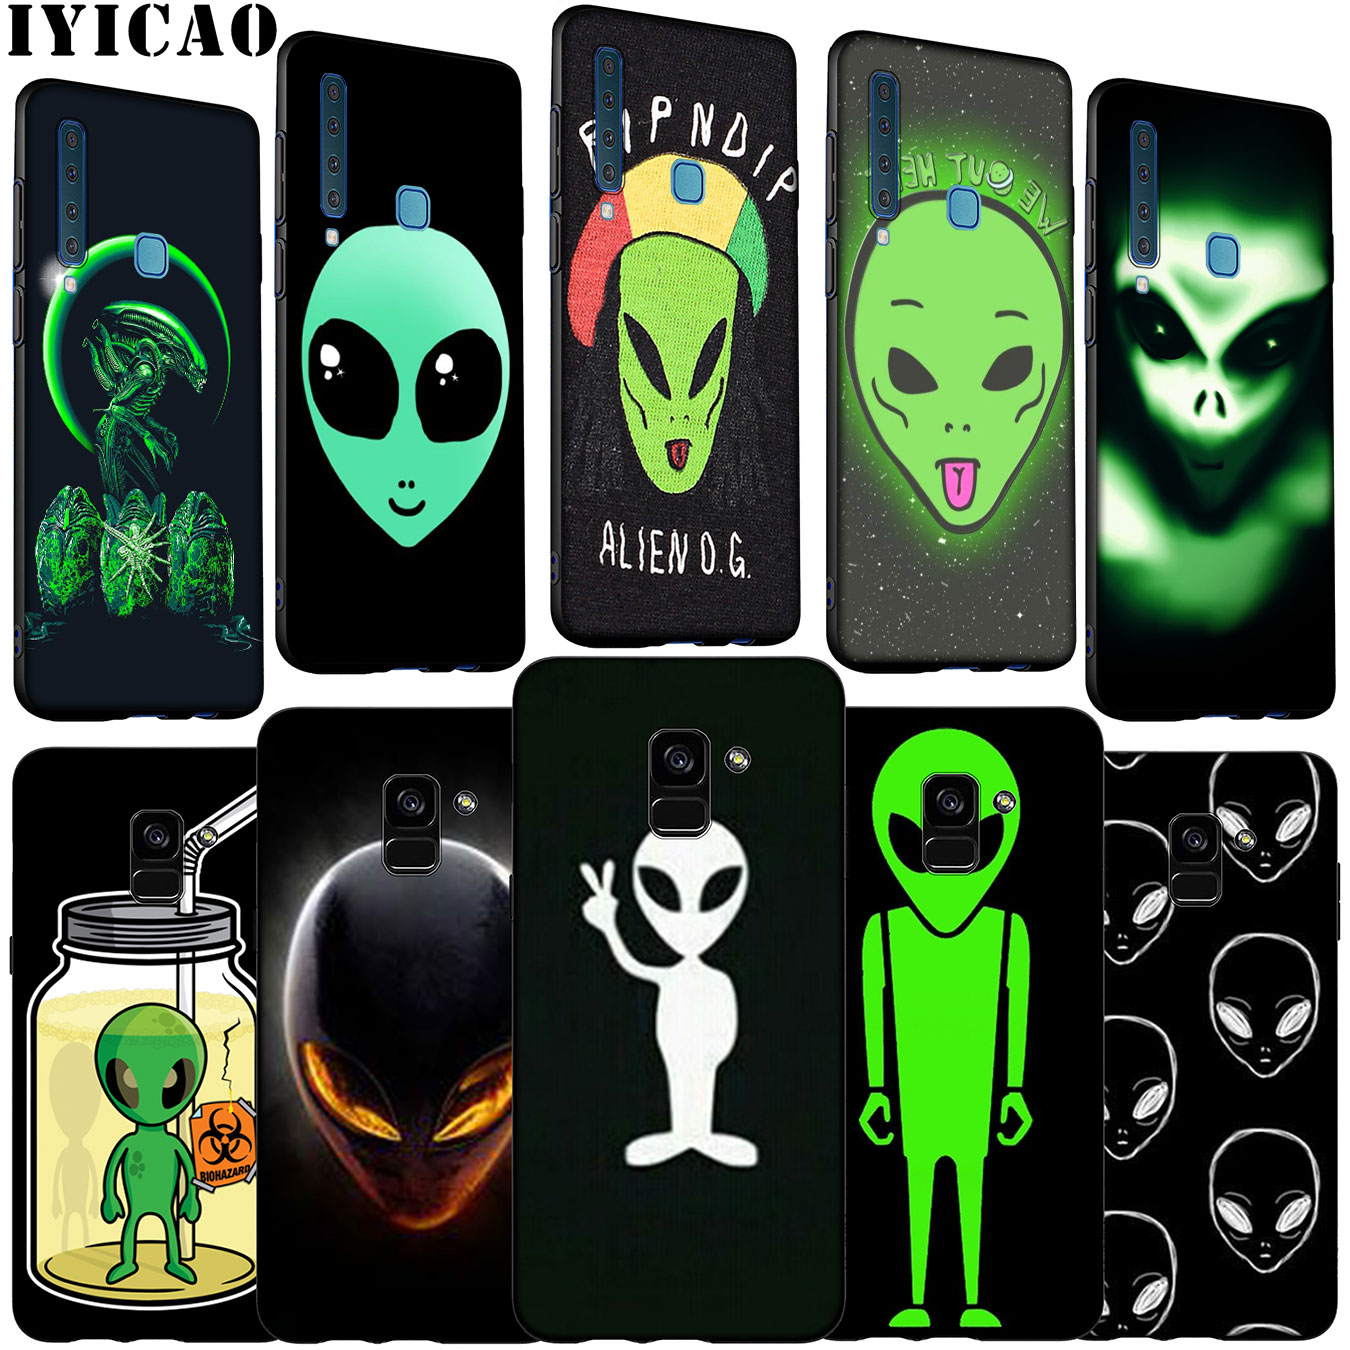 Cool Alien <font><b>funny</b></font> Cute Soft Silicone Phone <font><b>Case</b></font> for <font><b>Samsung</b></font> Galaxy A6 A7 A8 A9 2018 A3 A5 2016 2017 <font><b>Note</b></font> <font><b>9</b></font> 8 10 Plus image